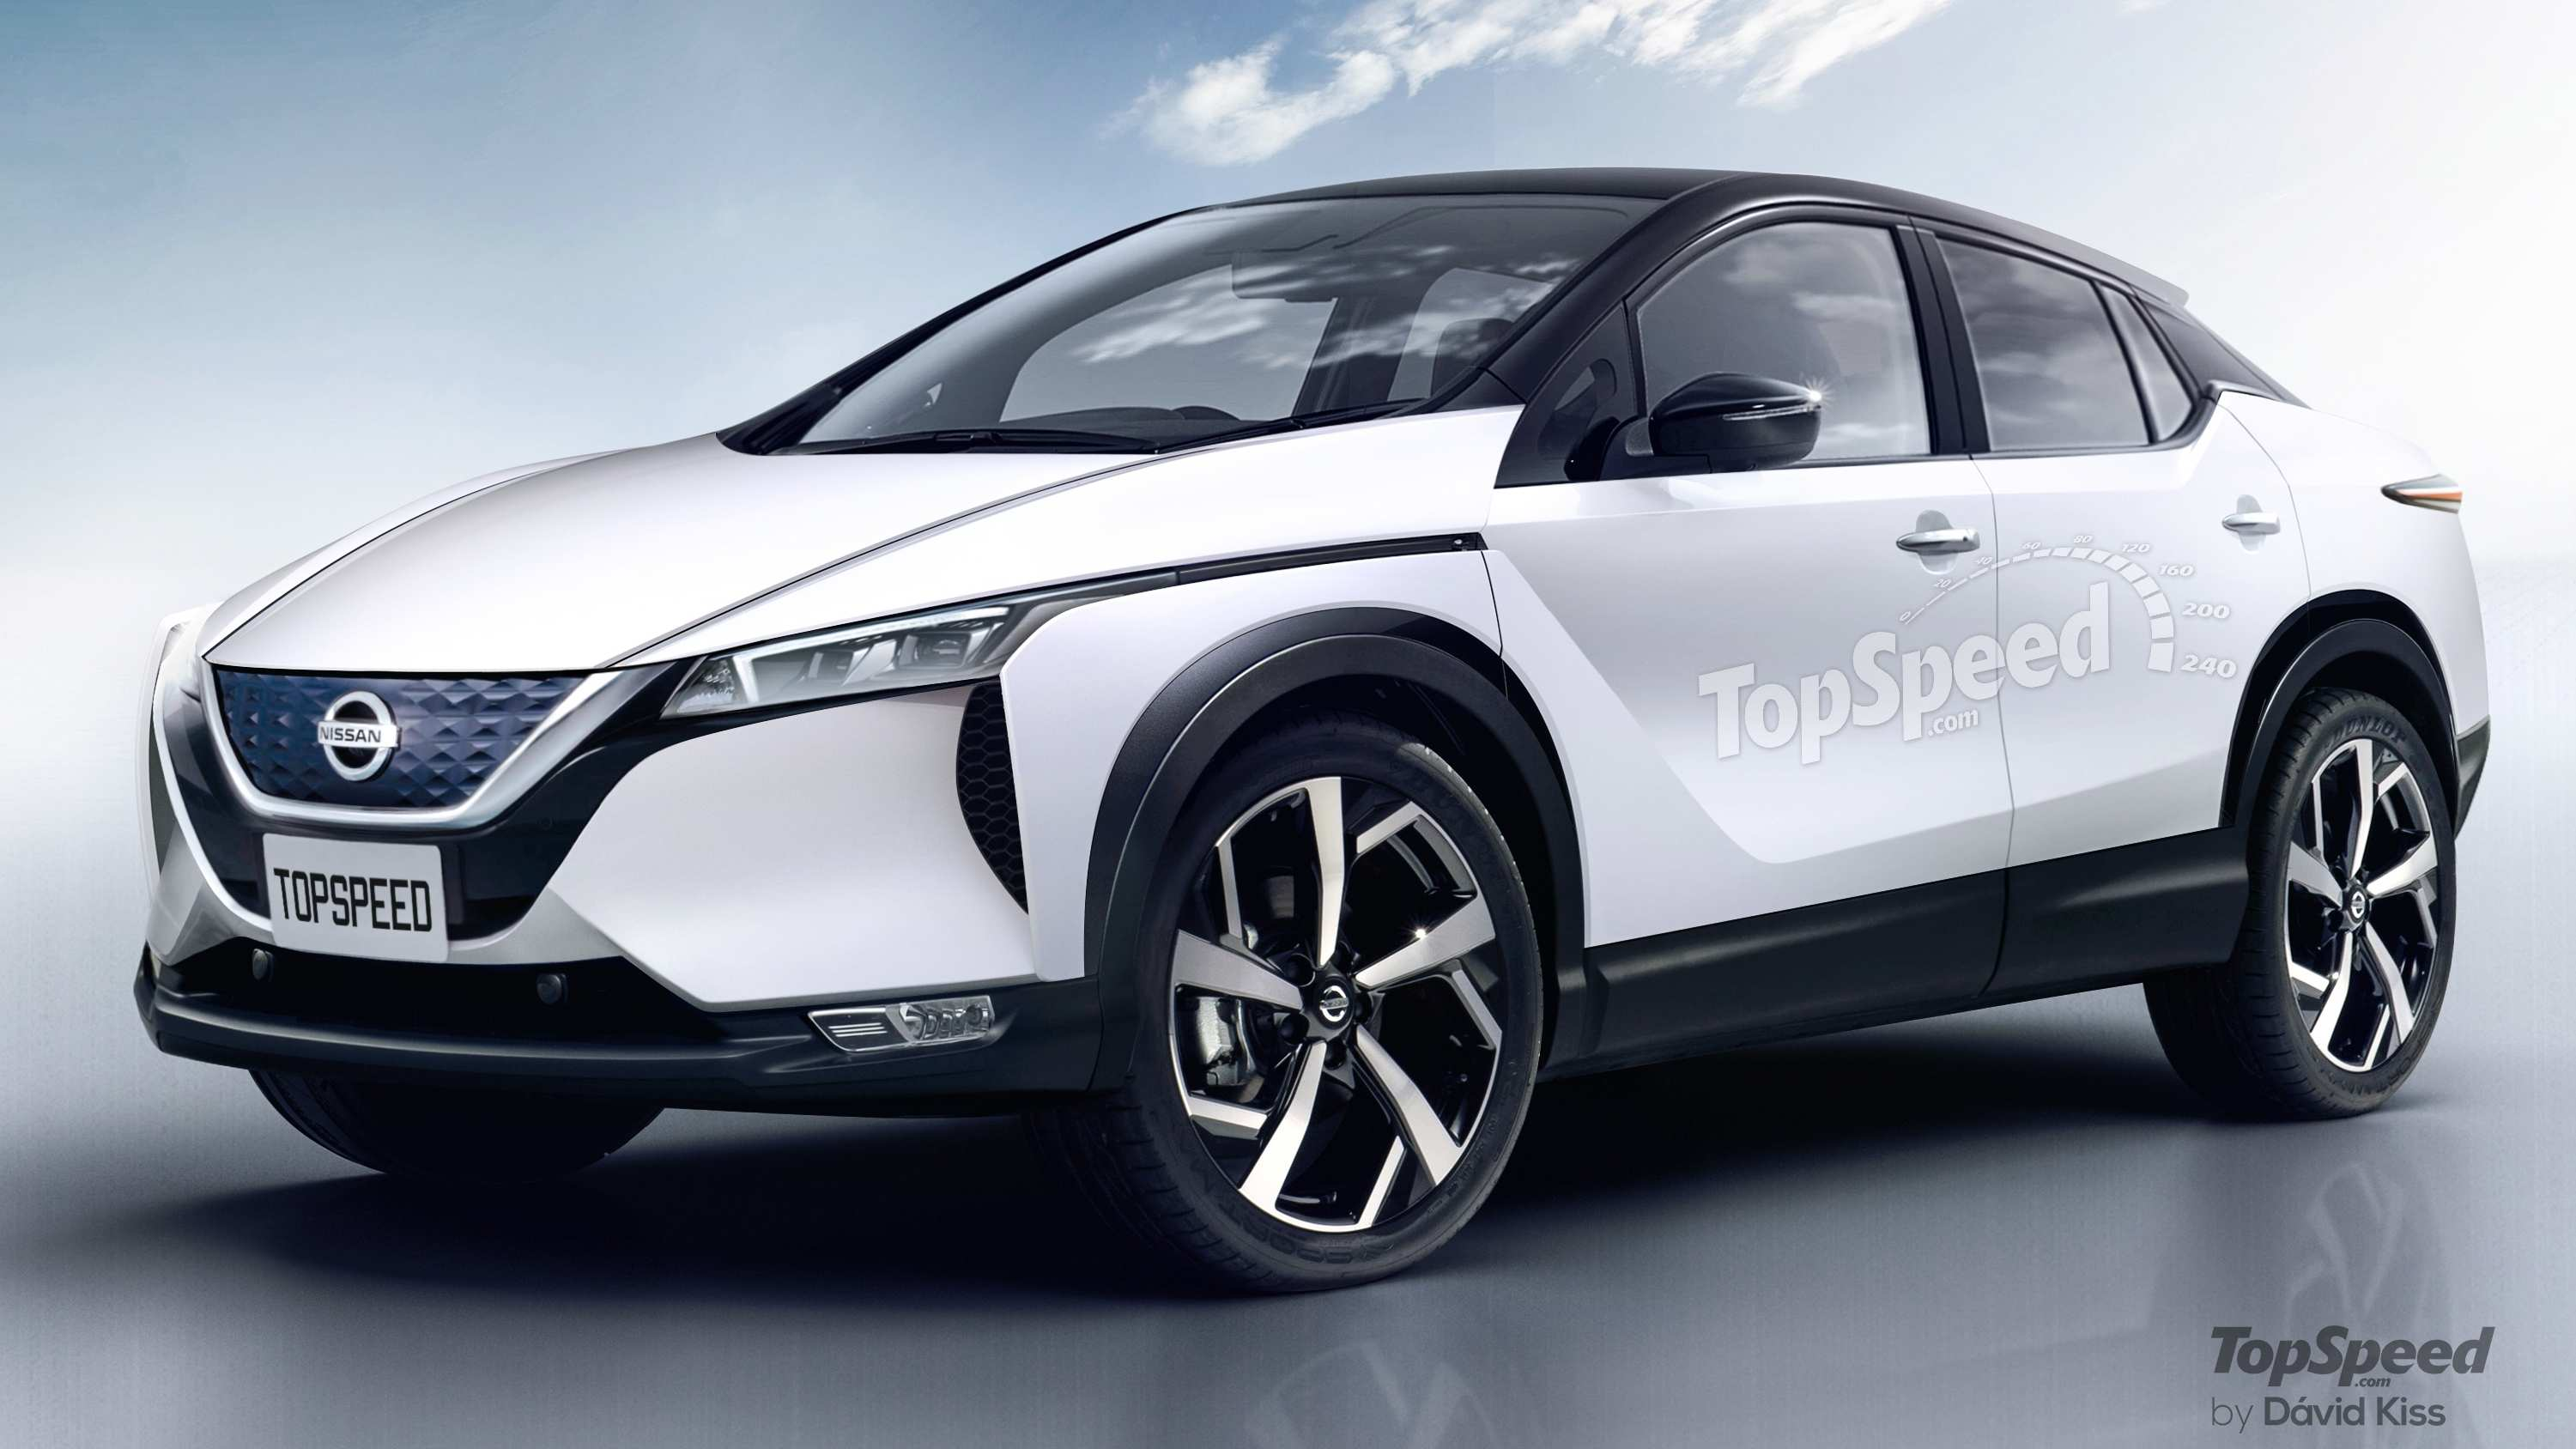 20 New Nissan Leaf Suv 2020 Pictures by Nissan Leaf Suv 2020